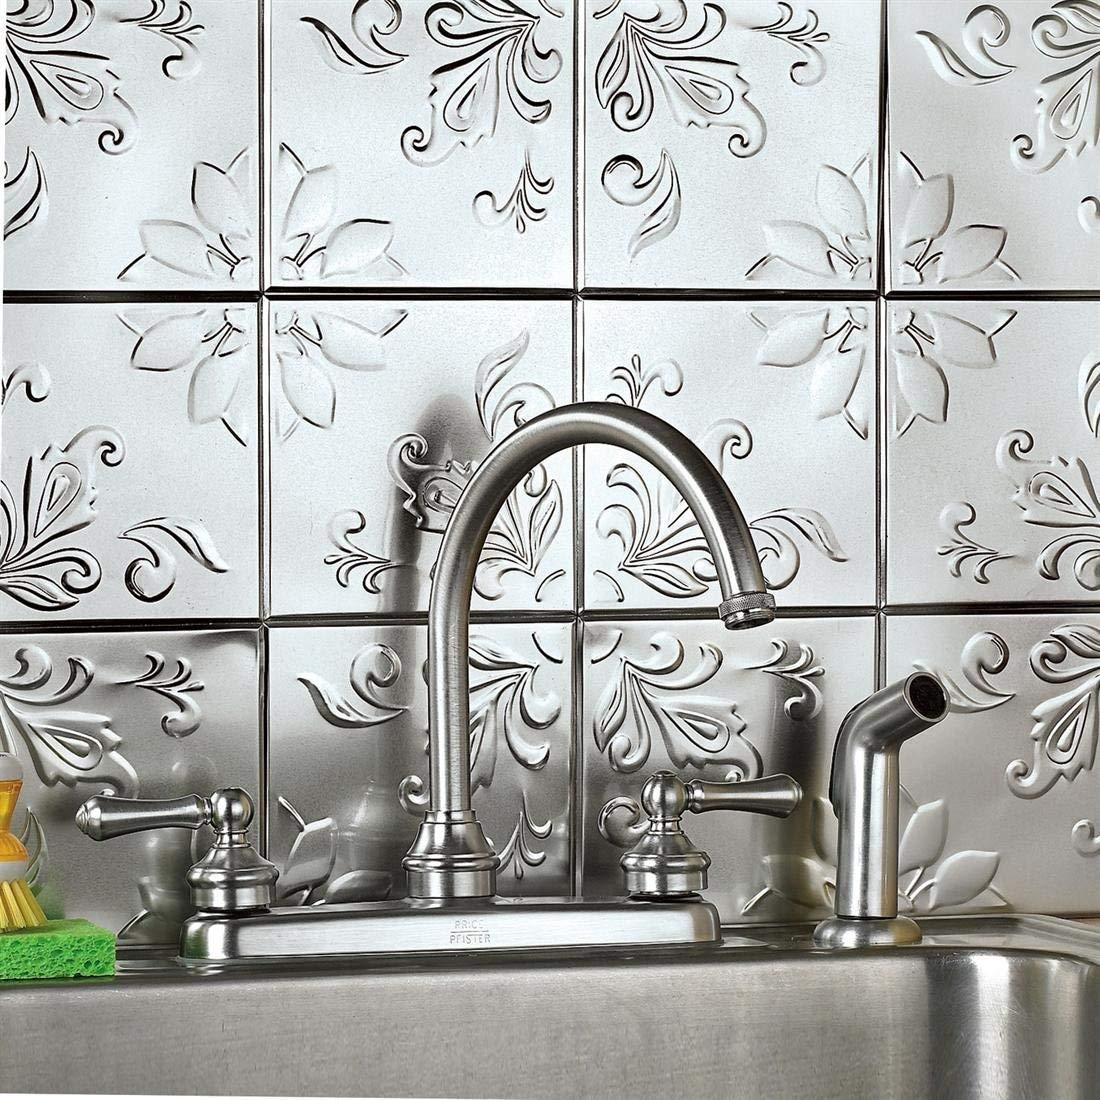 Amazing Tin Peel Stick Raised Floral Pattern Backsplash Kitchen Diy Wall Tiles Set Of 16 Silver Home Interior And Landscaping Ferensignezvosmurscom